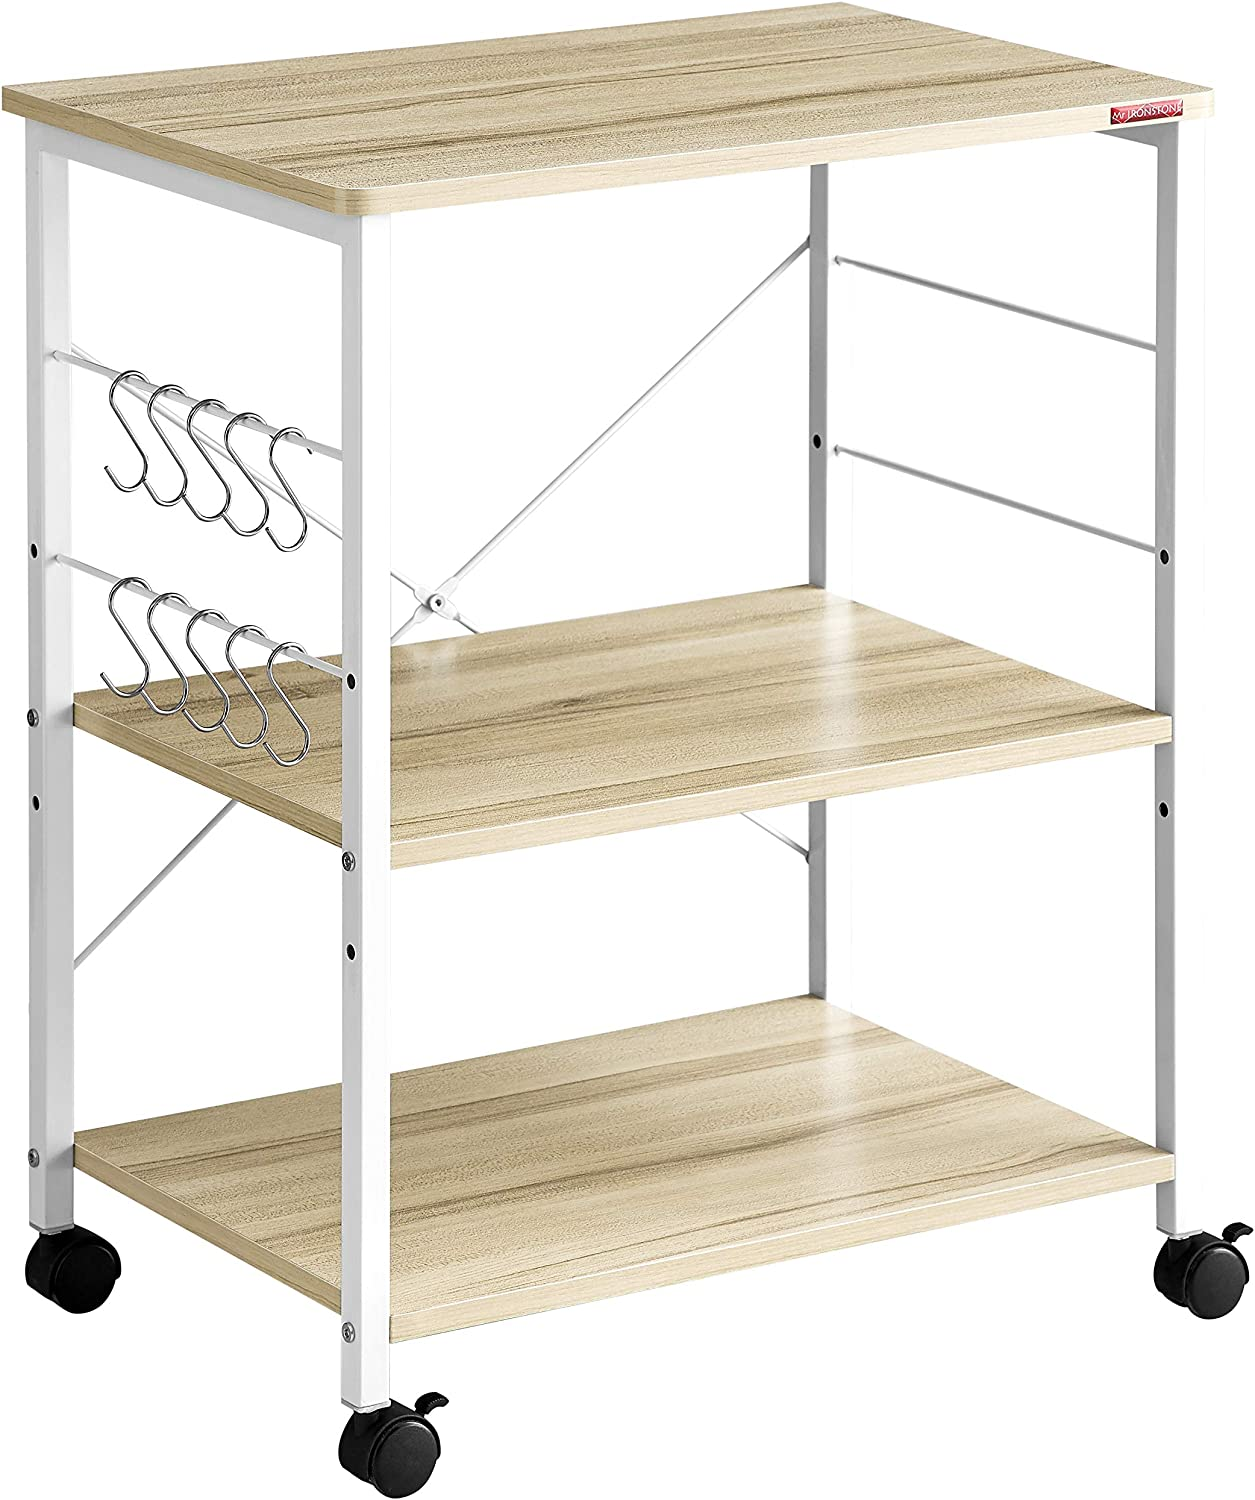 Mr IRONSTONE 3-Tier Kitchen Baker s Rack Utility Microwave Oven Stand Storage Cart Workstation Shelf Light Beige Top White Metal Frame